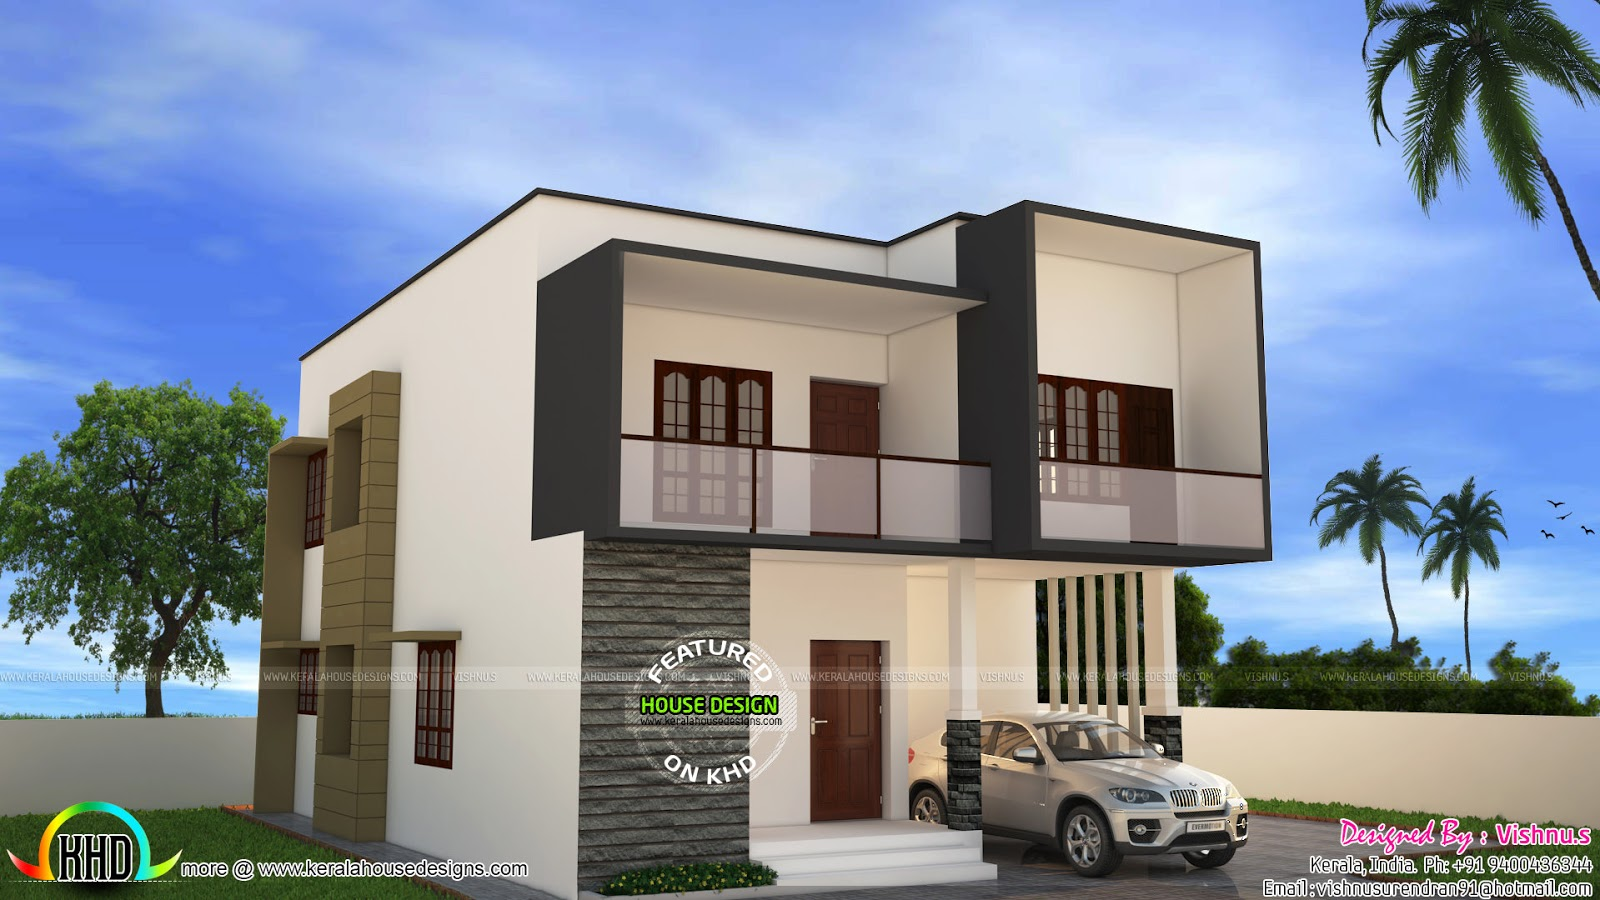 Simple modern house by vishnu s home design decor for Simple modern house